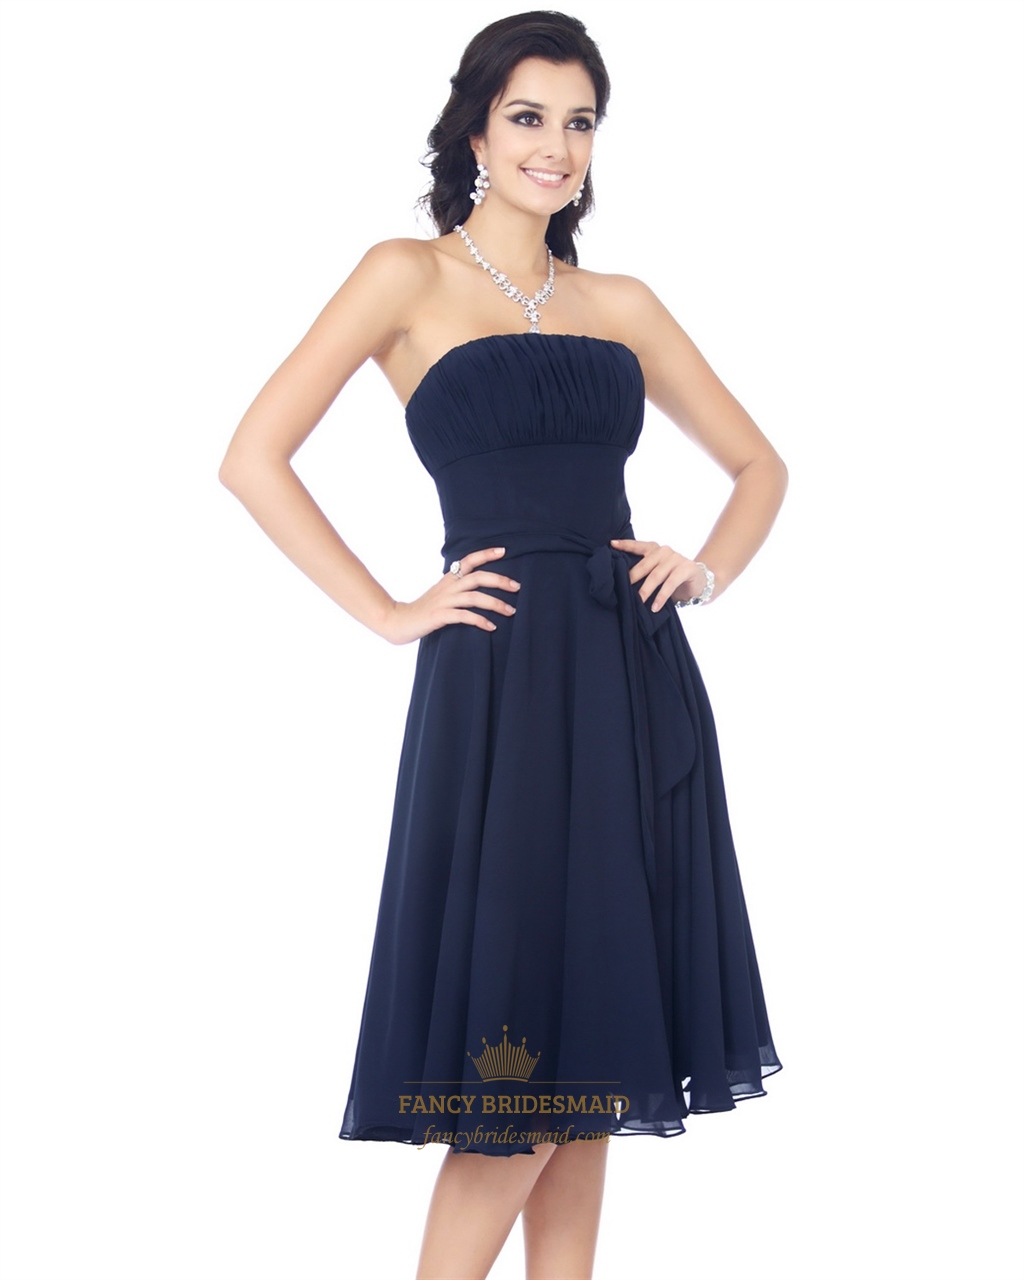 Navy blue strapless knee length chiffon bridesmaid dress with sash navy blue strapless knee length chiffon bridesmaid dress with sash ombrellifo Image collections